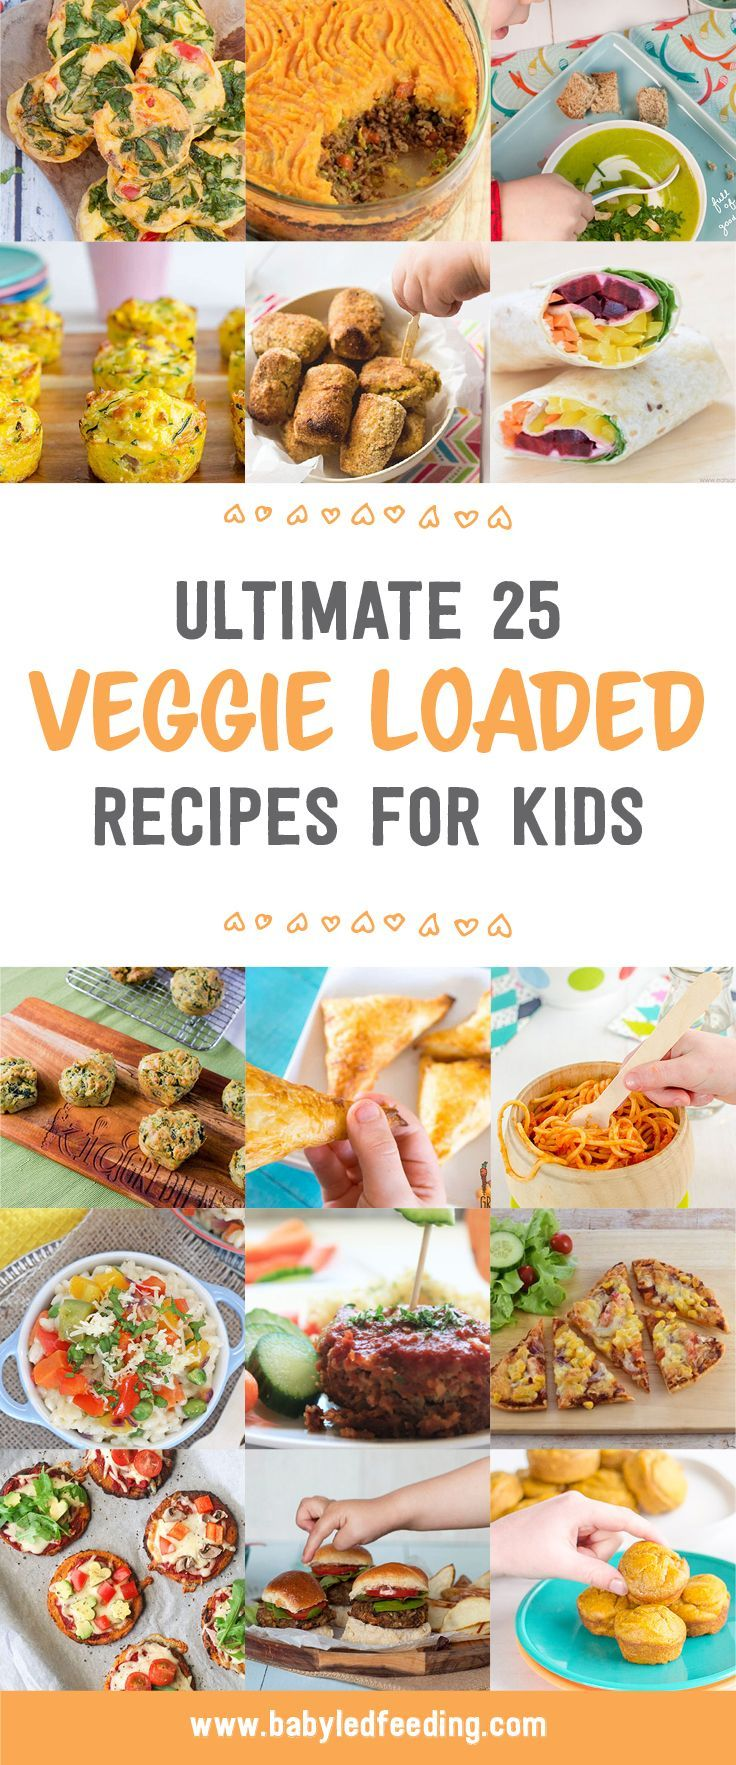 These 25 healthy vegetable loaded recipes are a perfect start to the New Year. Great for Baby led weaning, for healthy toddler food and the entire family too. via @https://www.pinterest.com/babyledfeeding